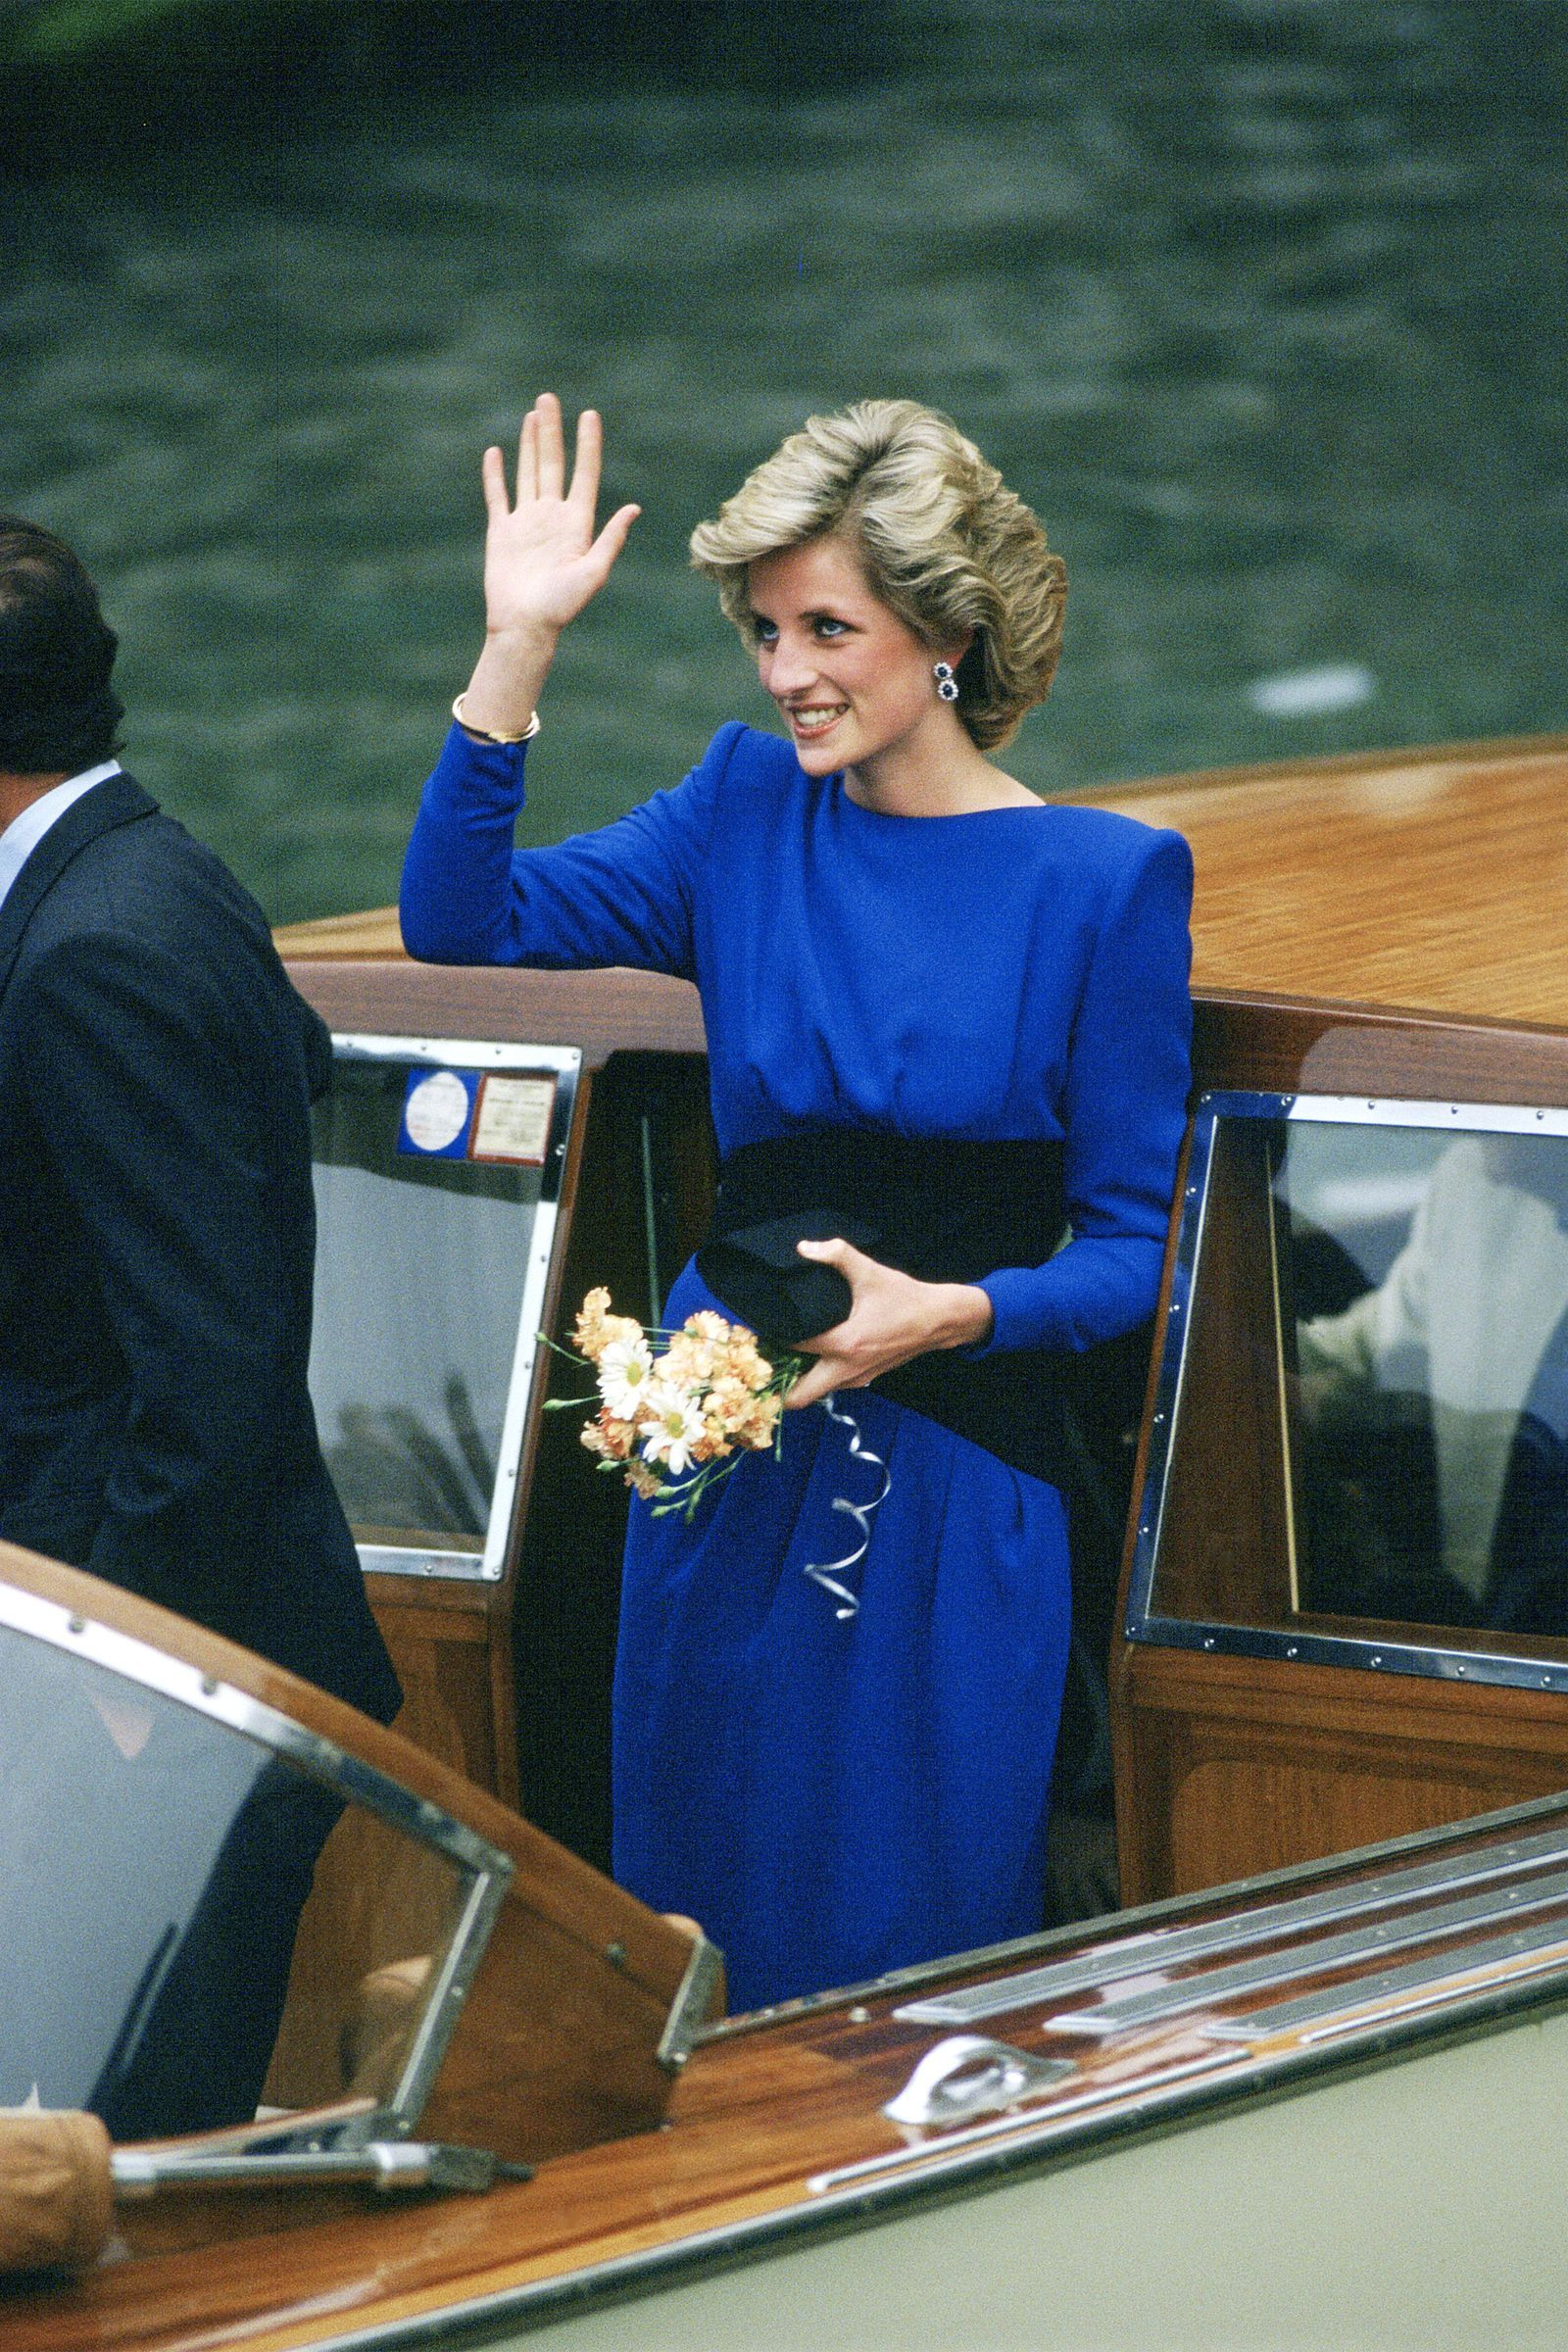 A Look Back At Princess Diana's Travels Around The World The People's Princess made an impact across the globe. #princessdiana